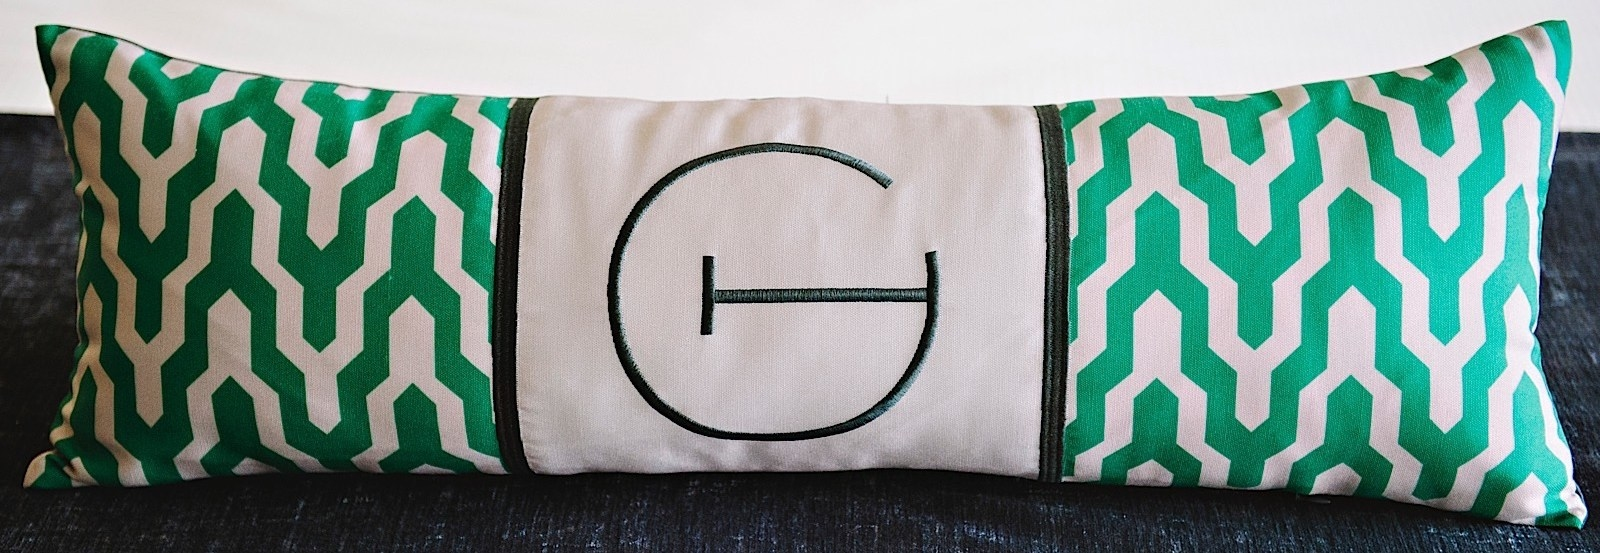 a pillow with an embroidered letter